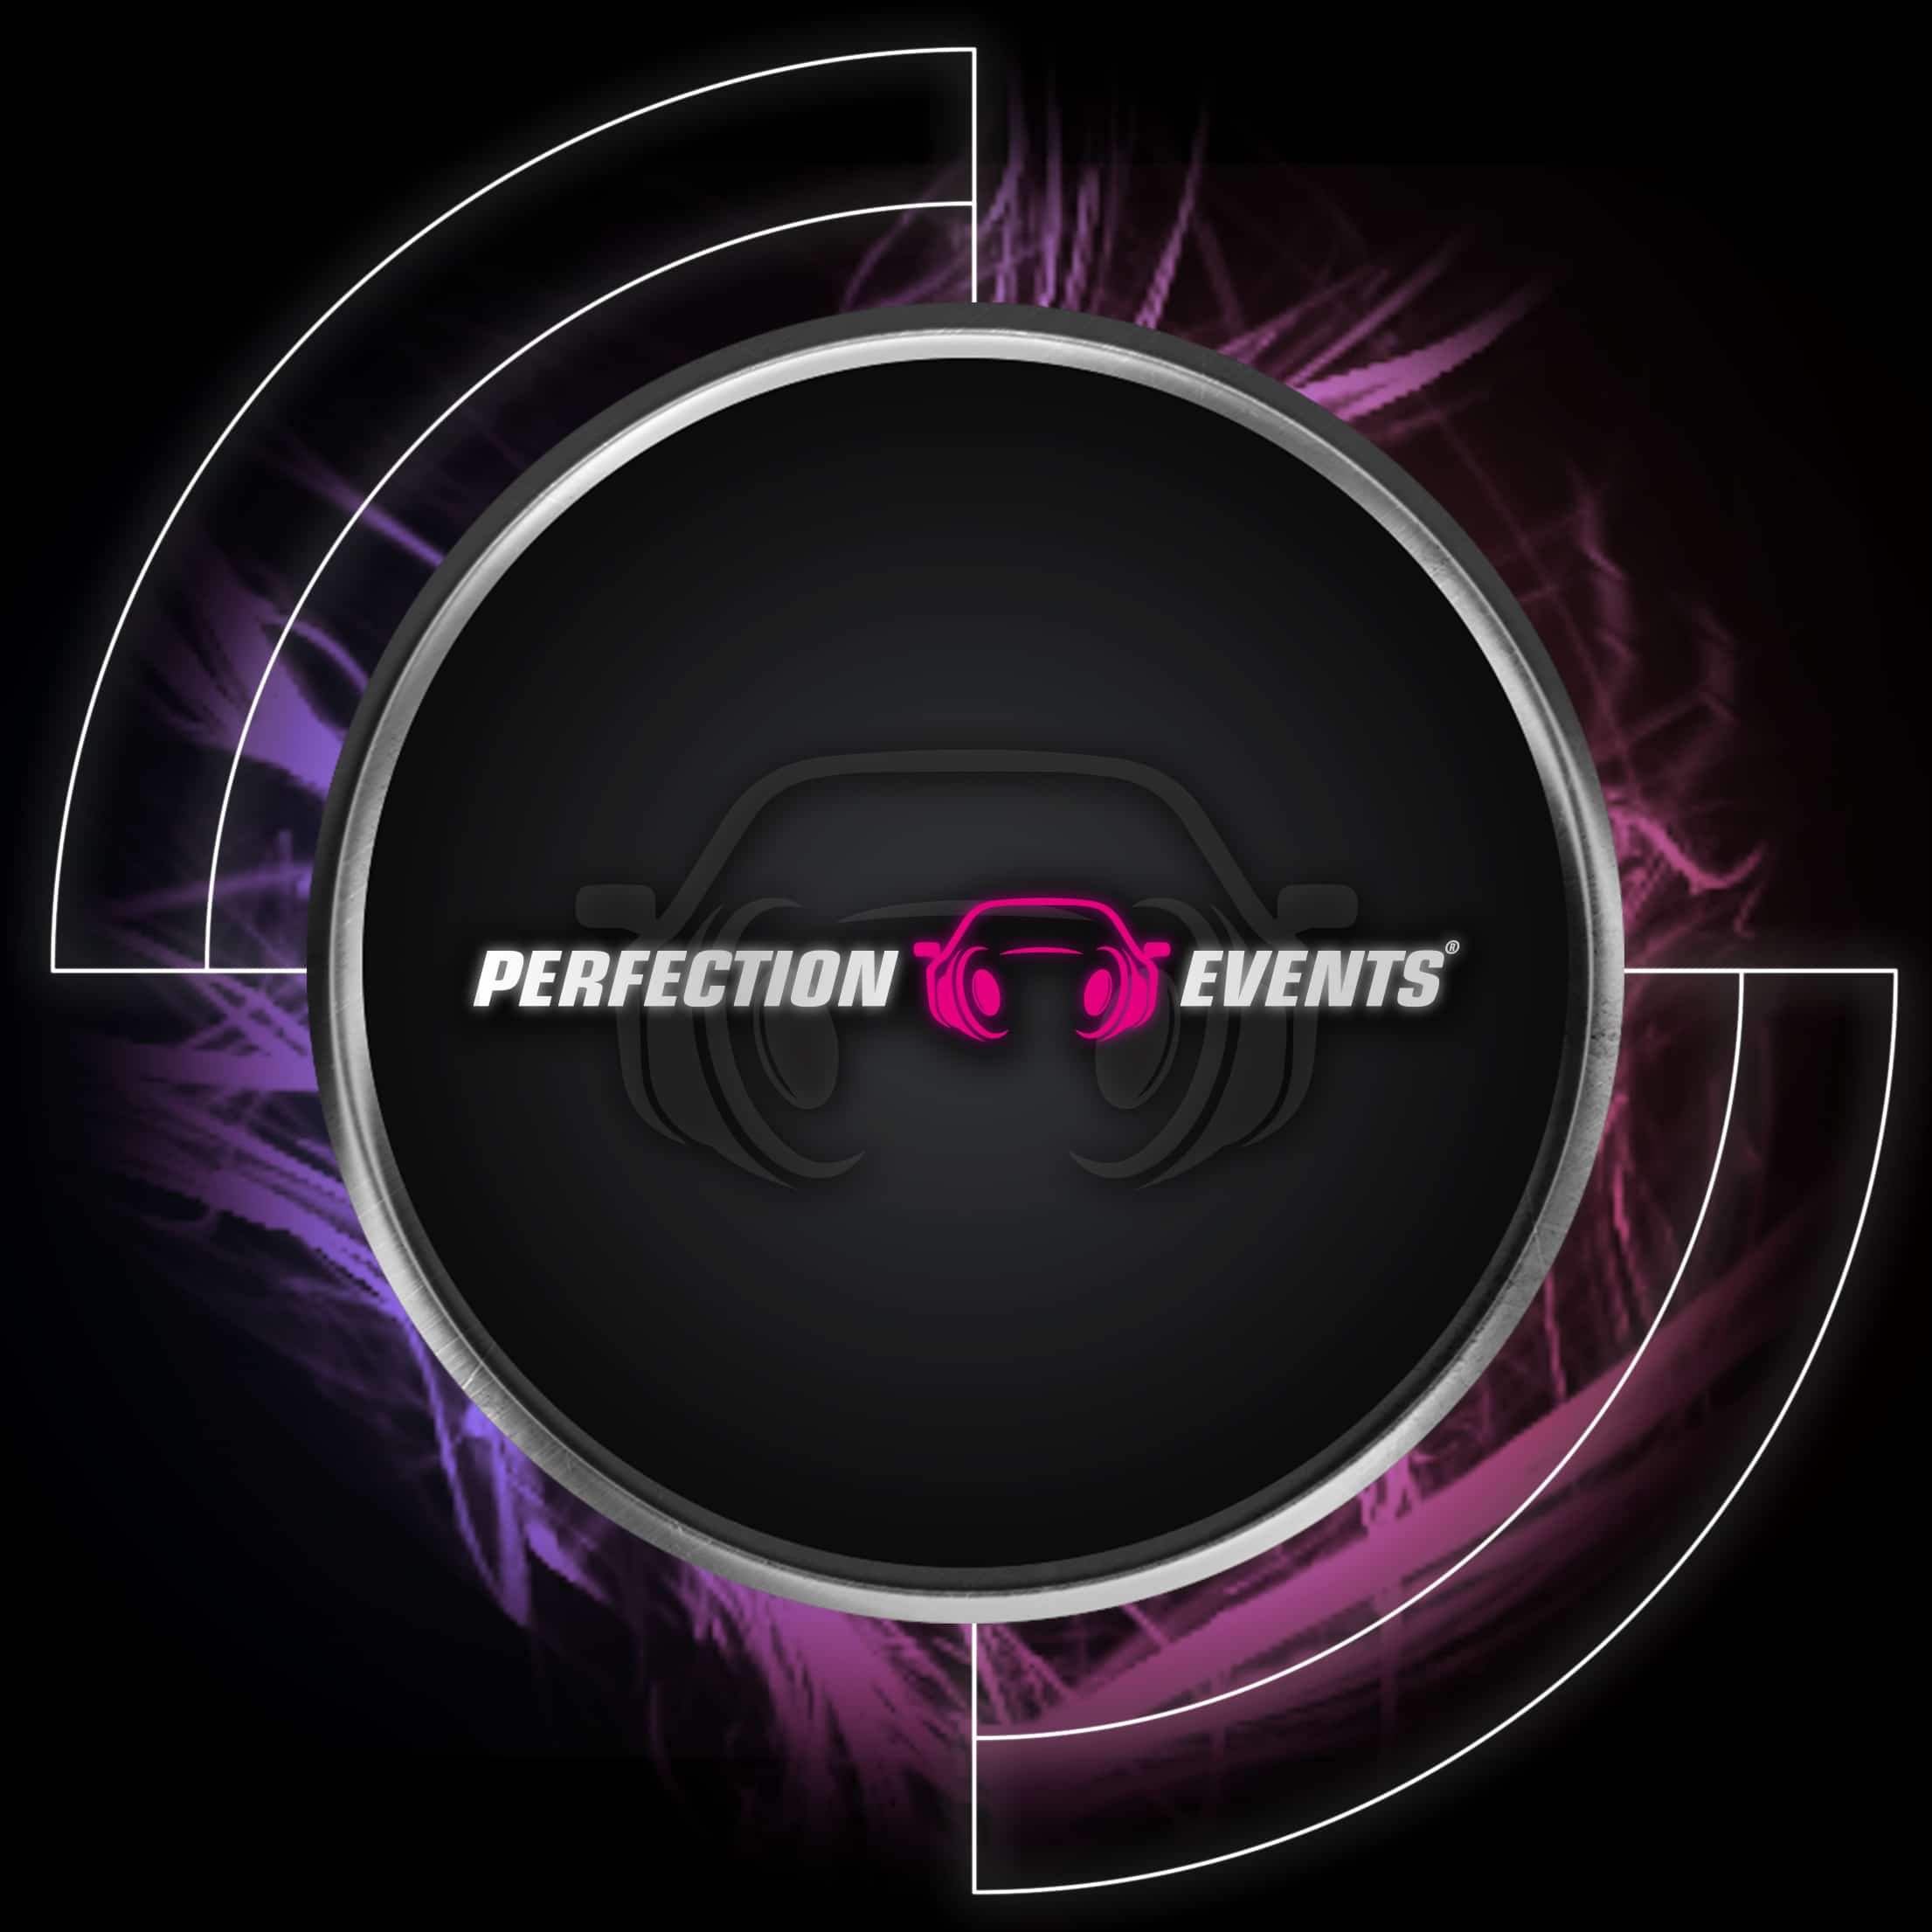 PERFECTION EVENTS